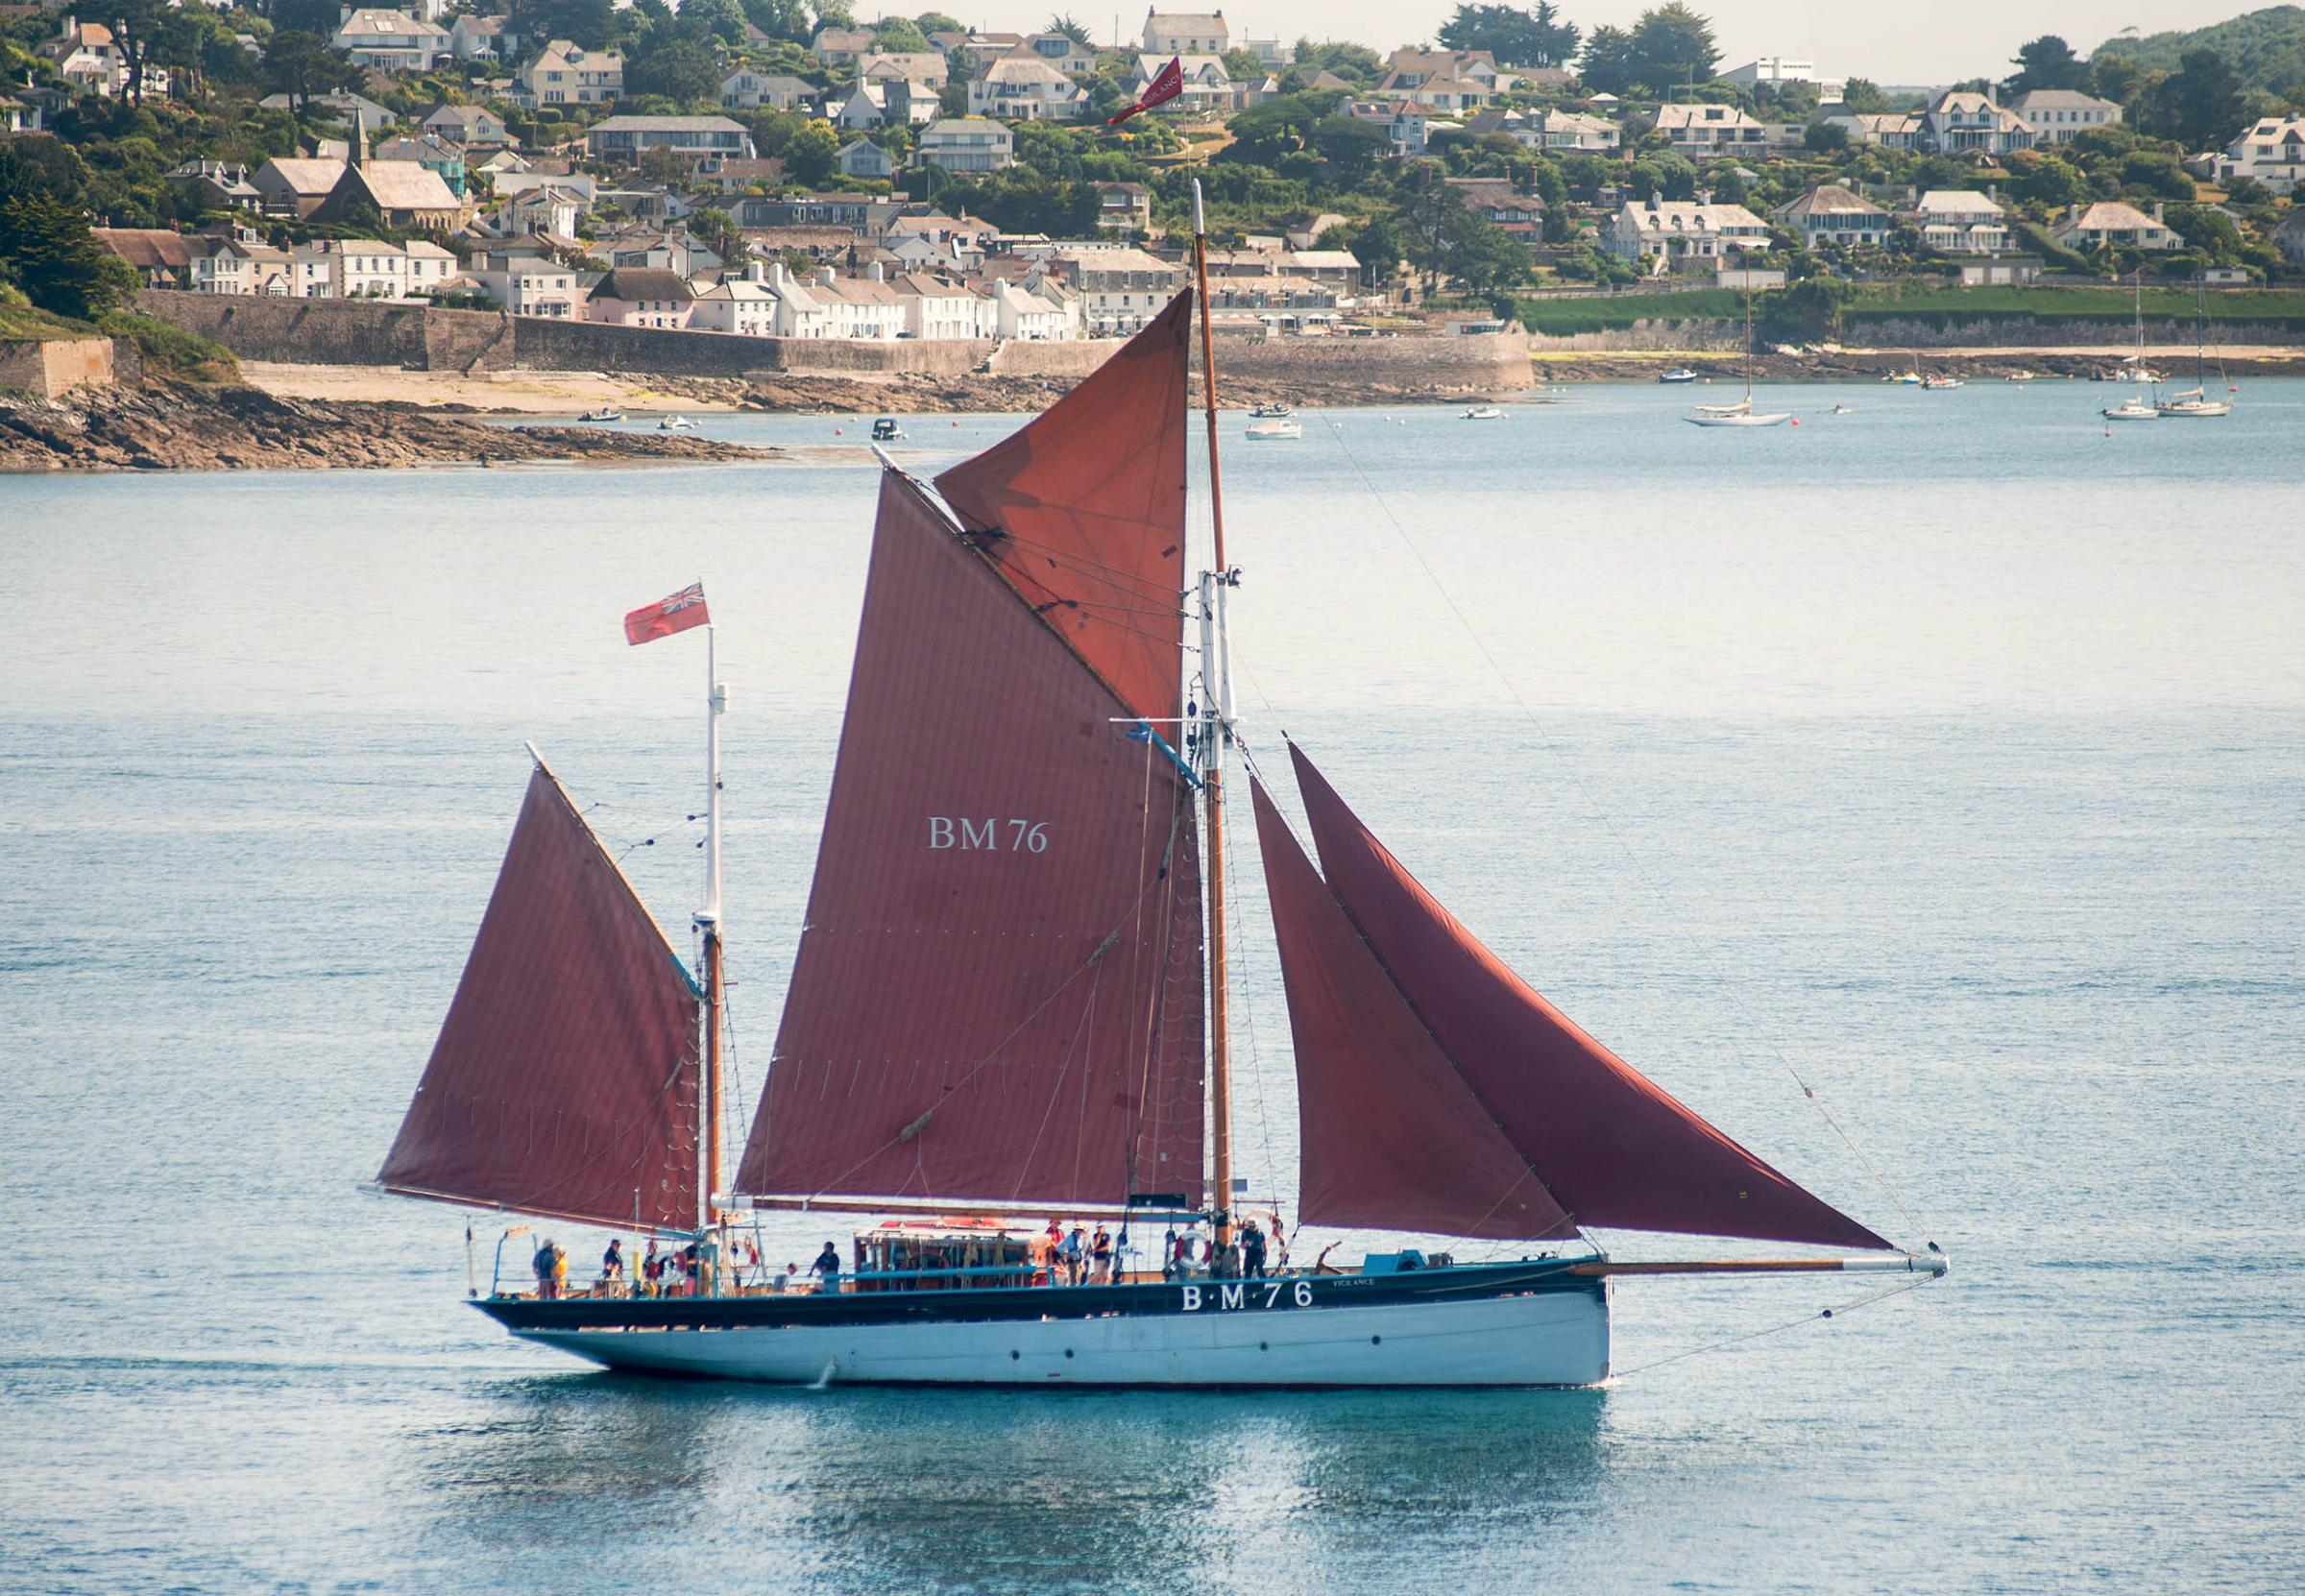 Falmouth Classics sail to the sound of sea shanties under beautiful blue skies